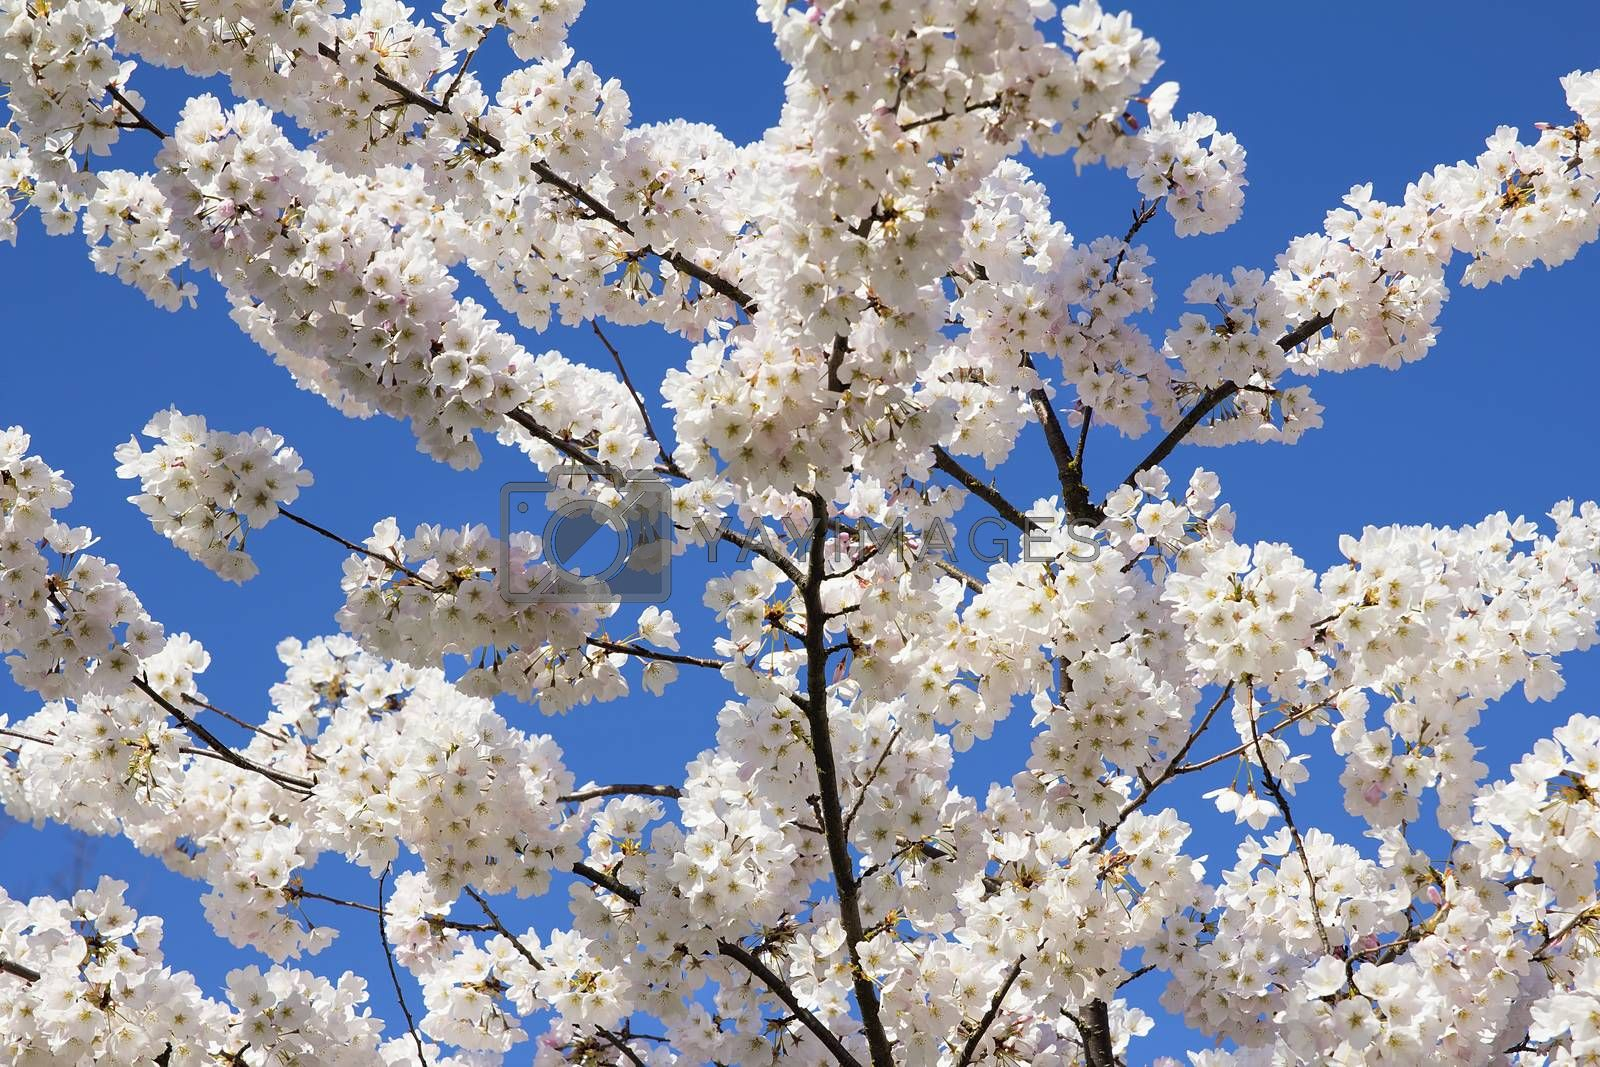 Cherry Blossoms Flowers in Full Bloom by jpldesigns